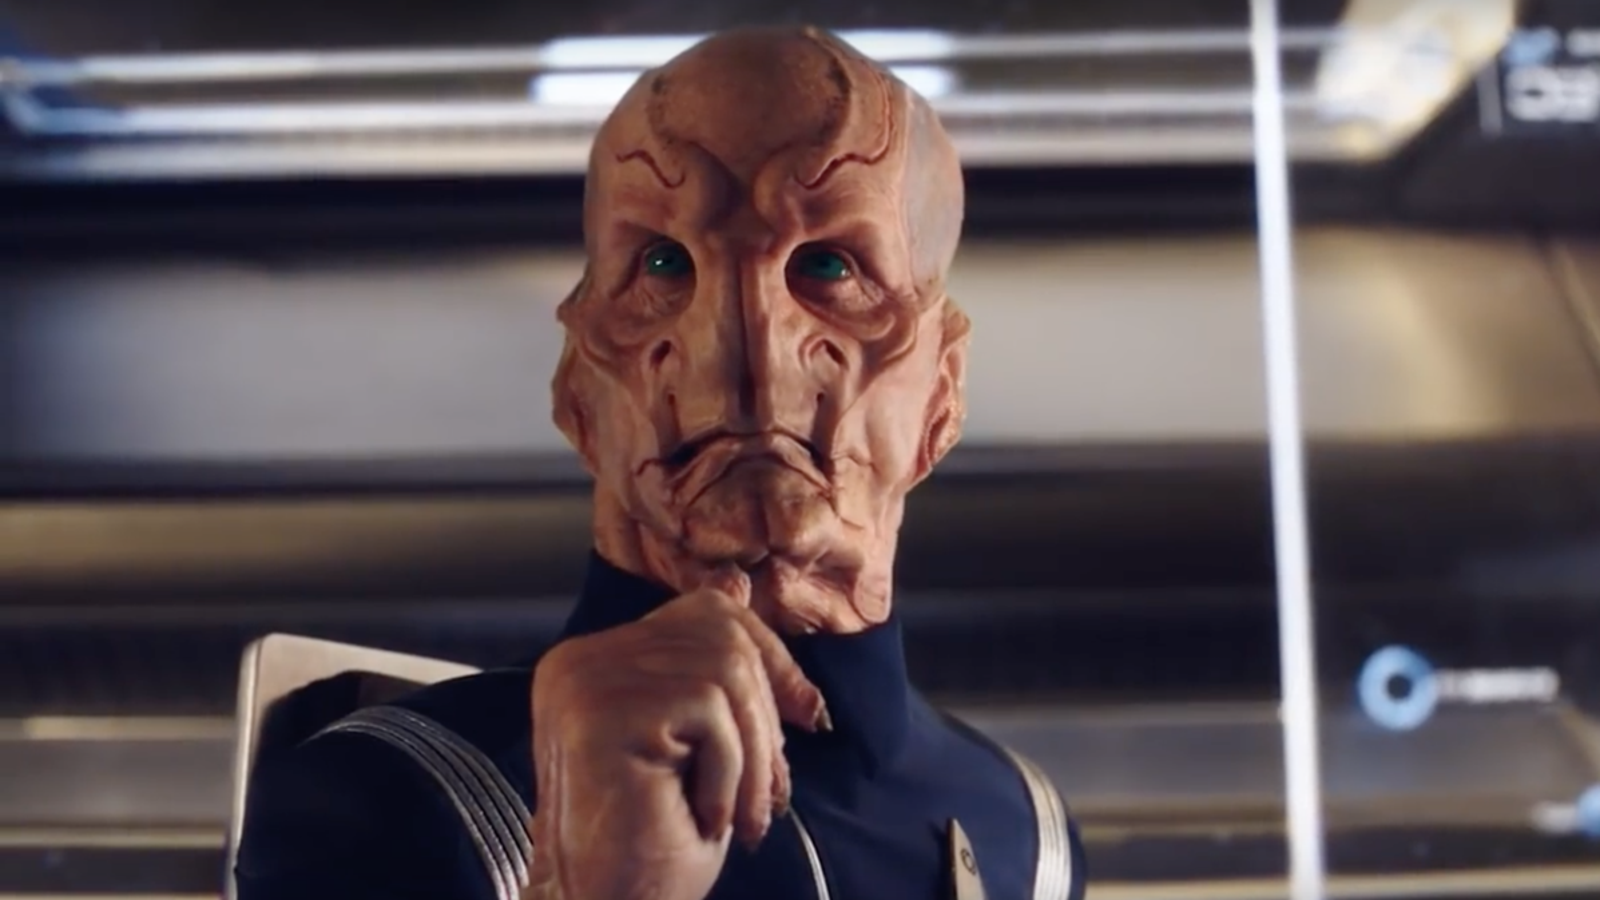 Saru From Star Trek: Discovery Gives Sensible, Practical Workplace Advice